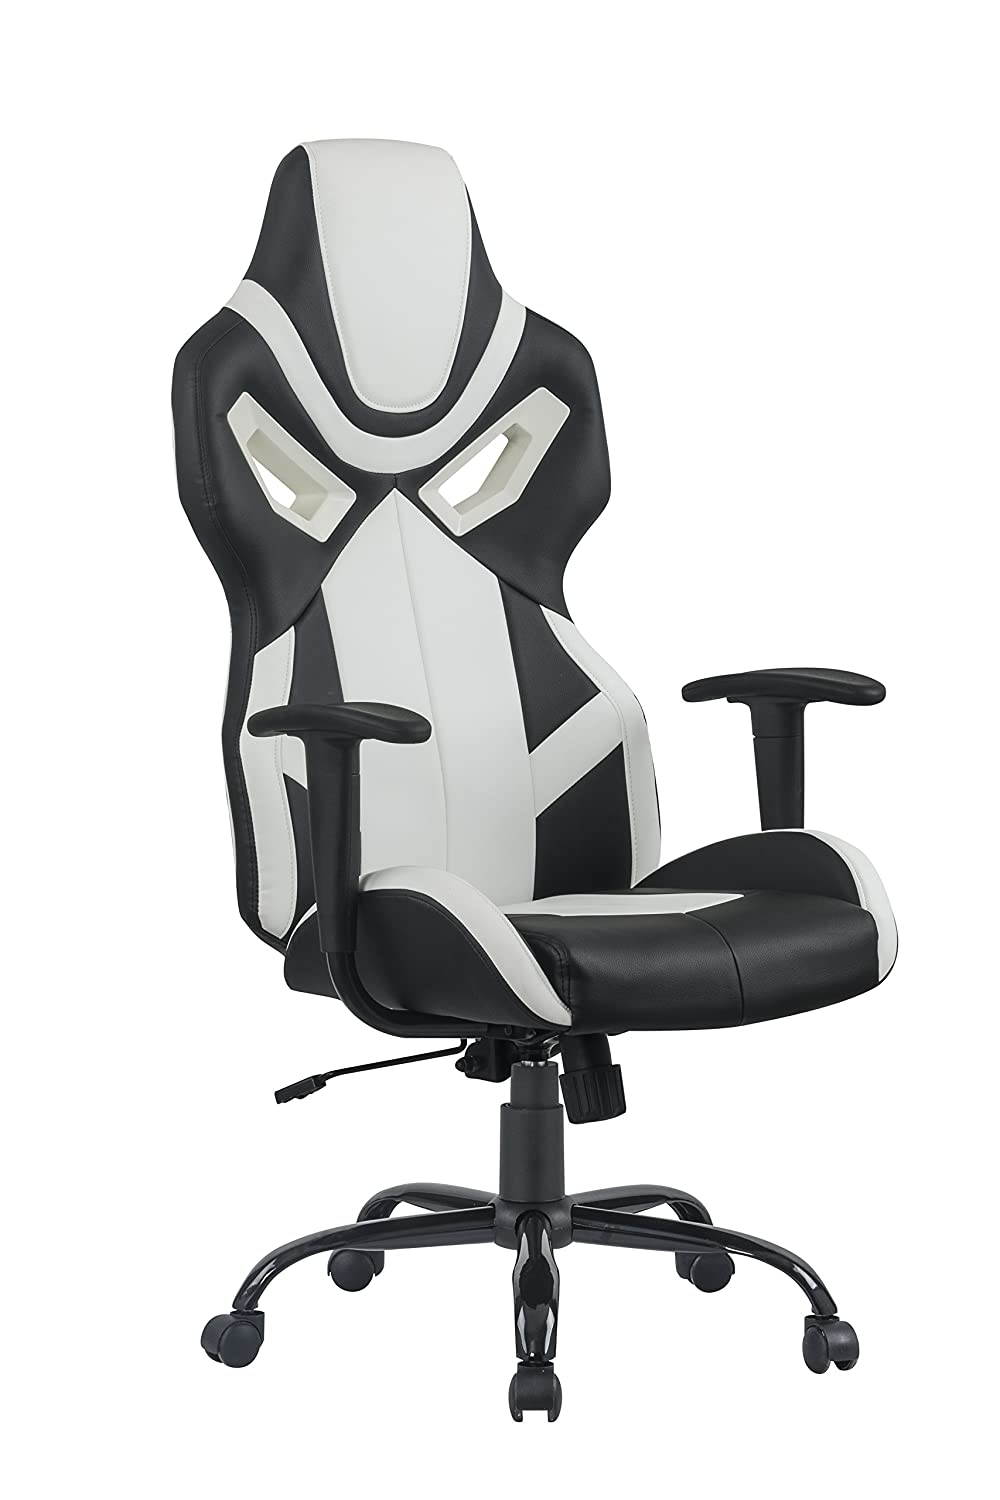 Outstanding Top 10 Best Gaming Chairs Reviews 2018 2019 On Flipboard By Evergreenethics Interior Chair Design Evergreenethicsorg